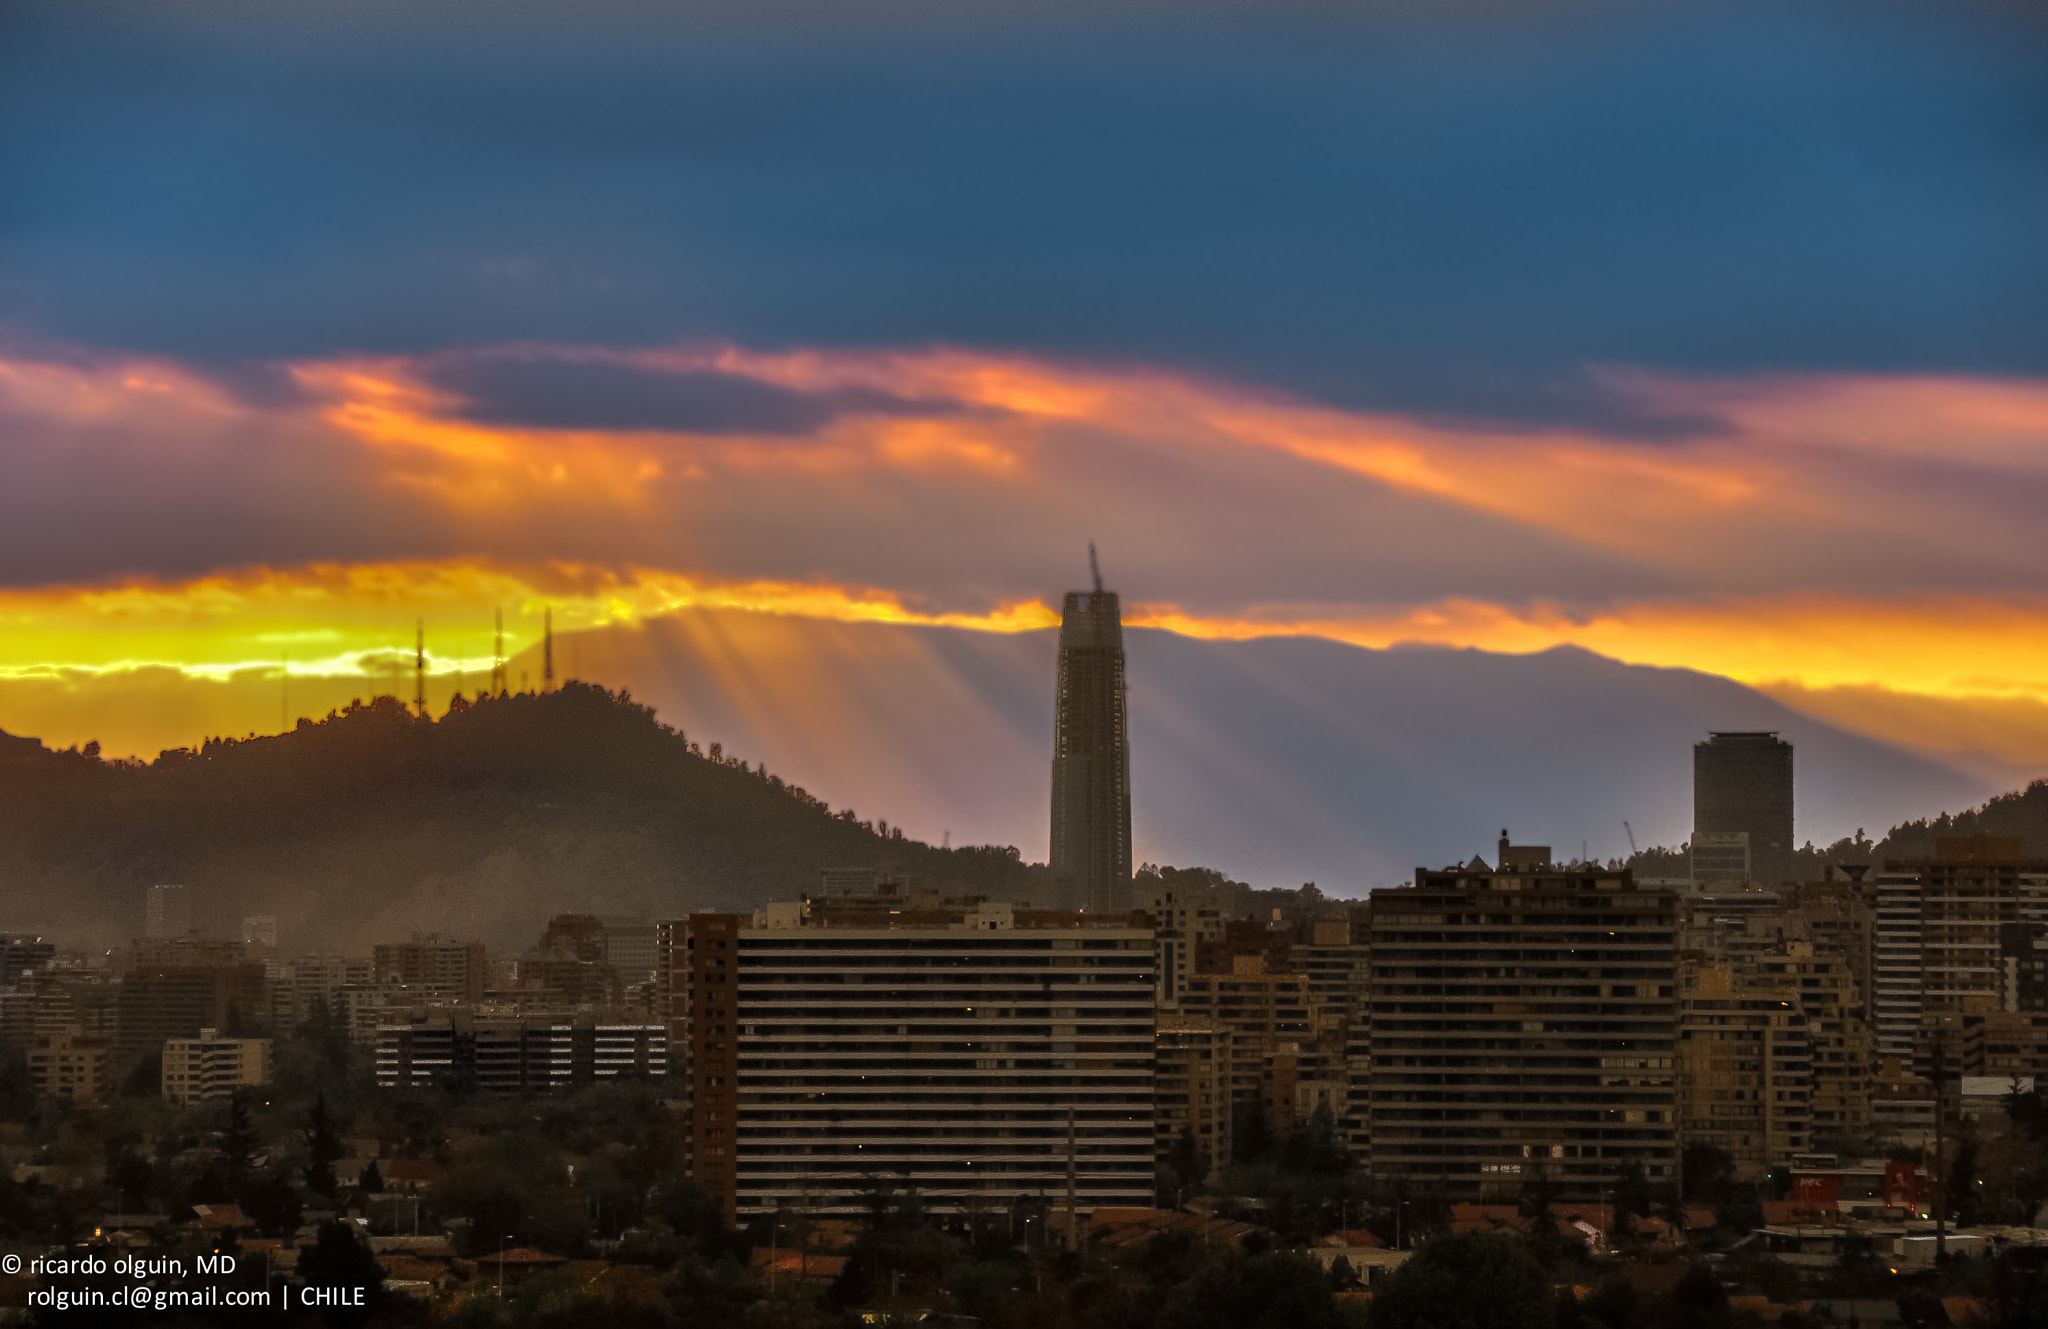 Photograph Santiago sunset by RICARDO OLGUIN, MD on 500px